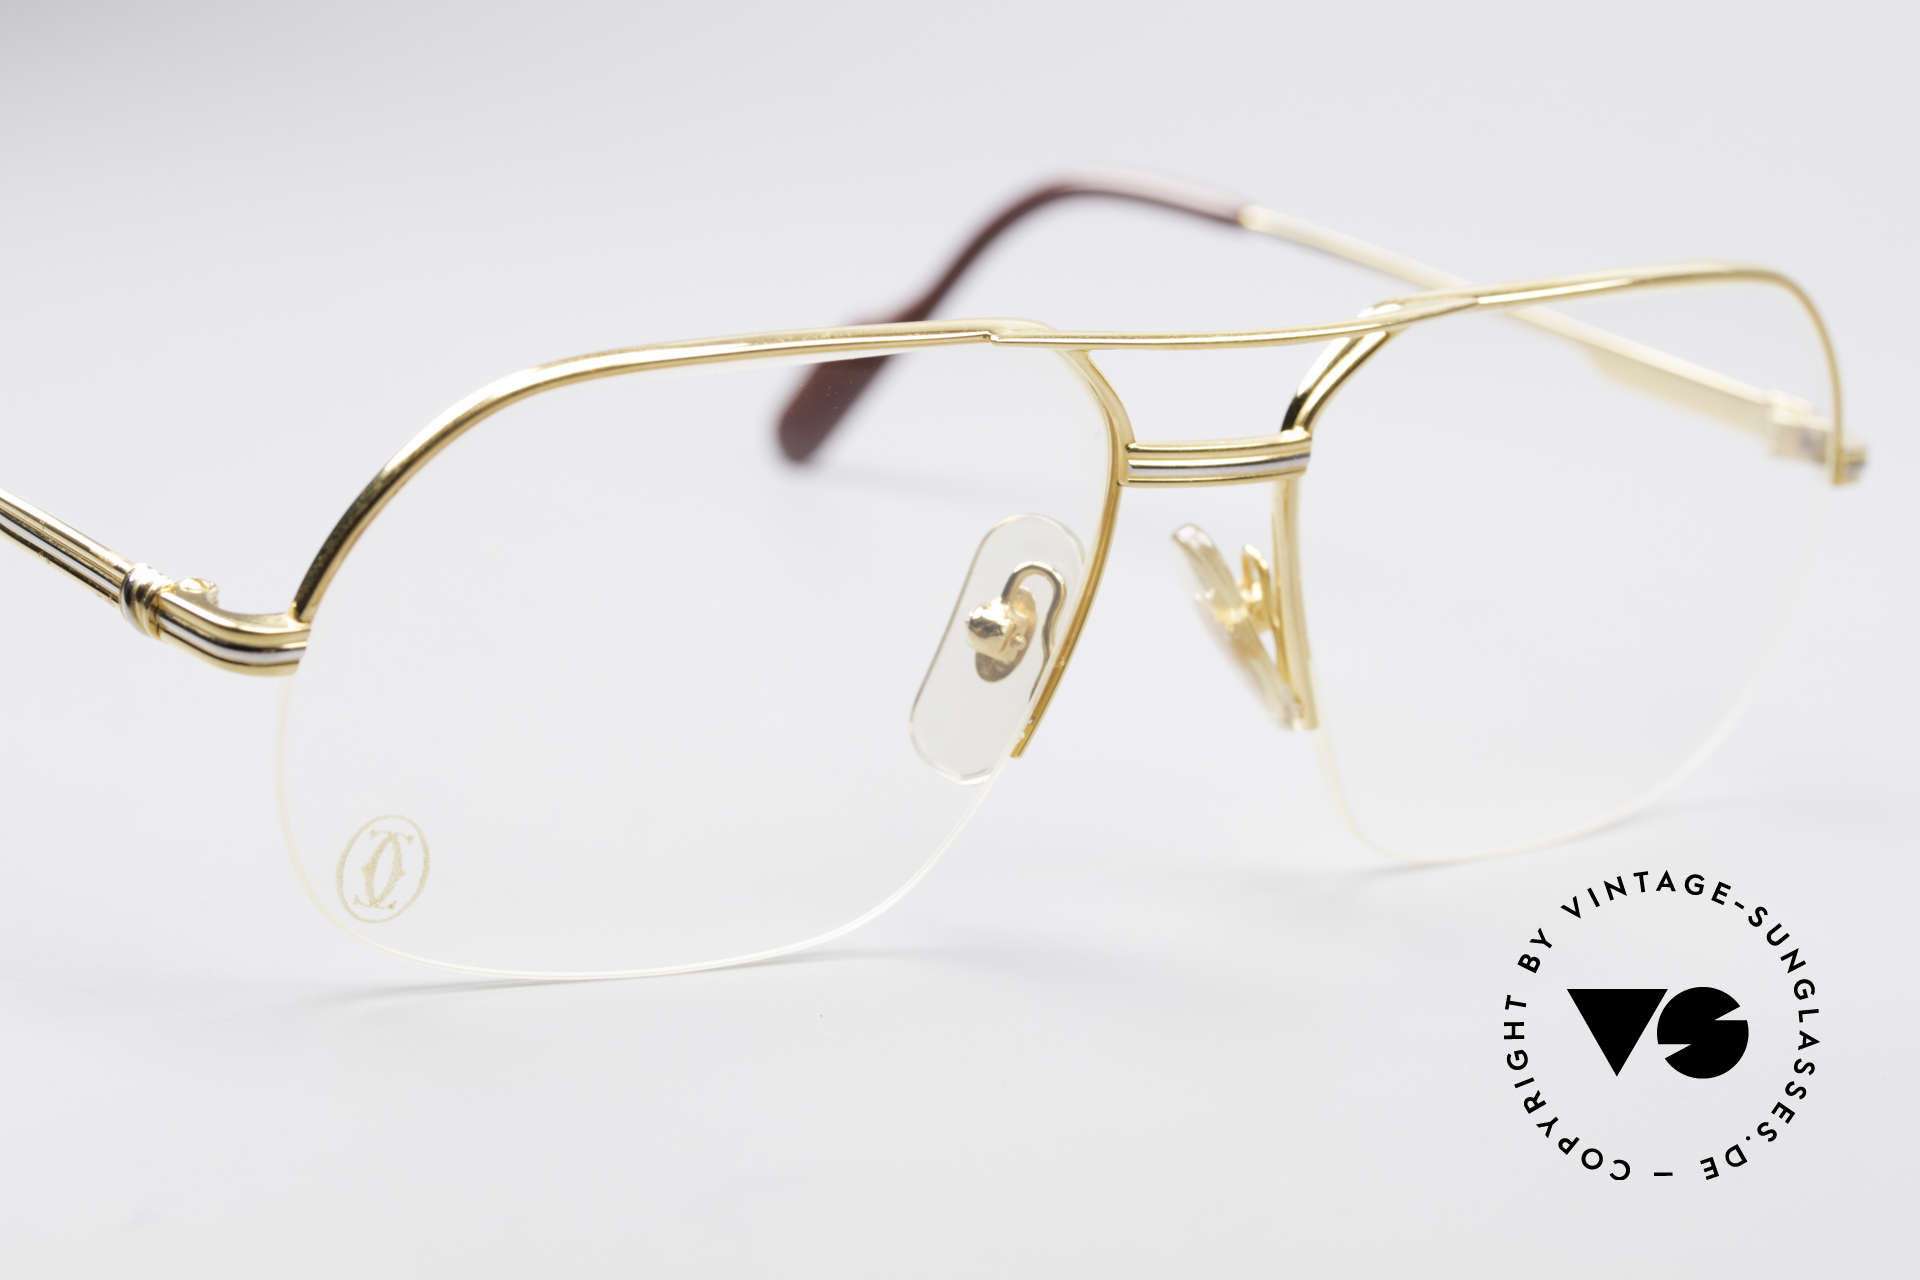 Cartier Orsay Luxury Vintage Eyeglasses, unworn, new old stock (incl. original box by Cartier), Made for Men